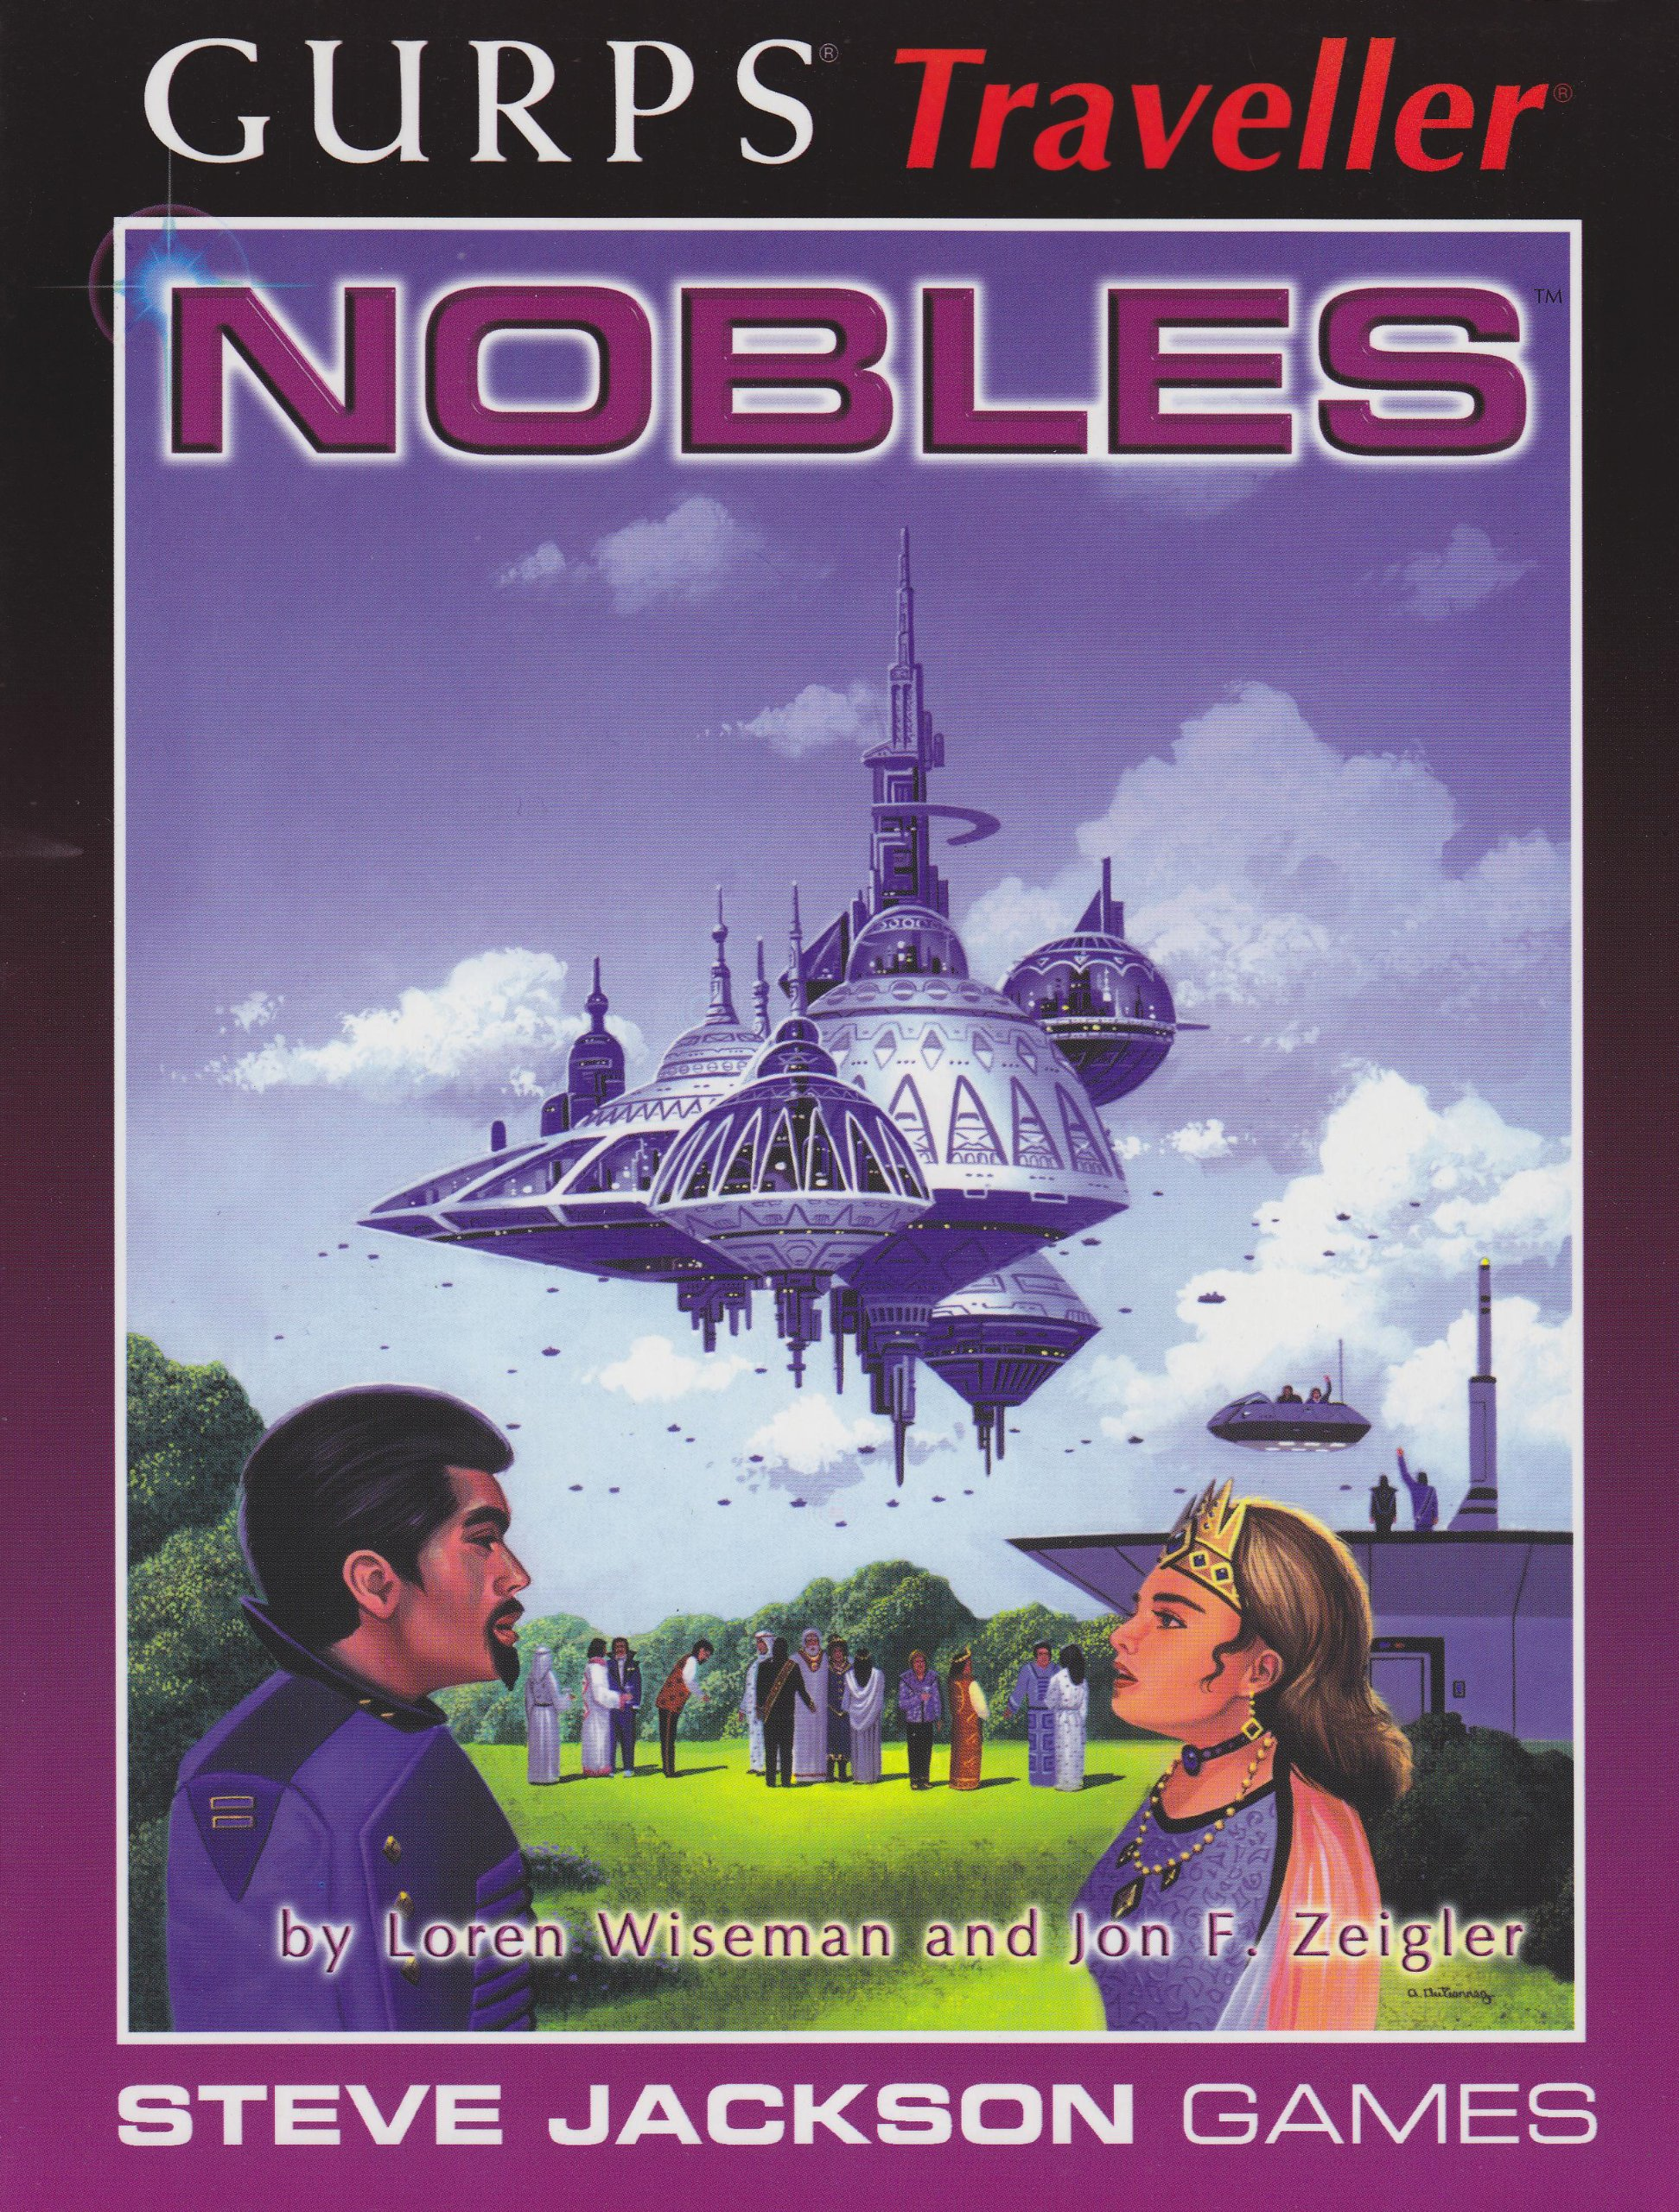 GURPS Traveller Nobles